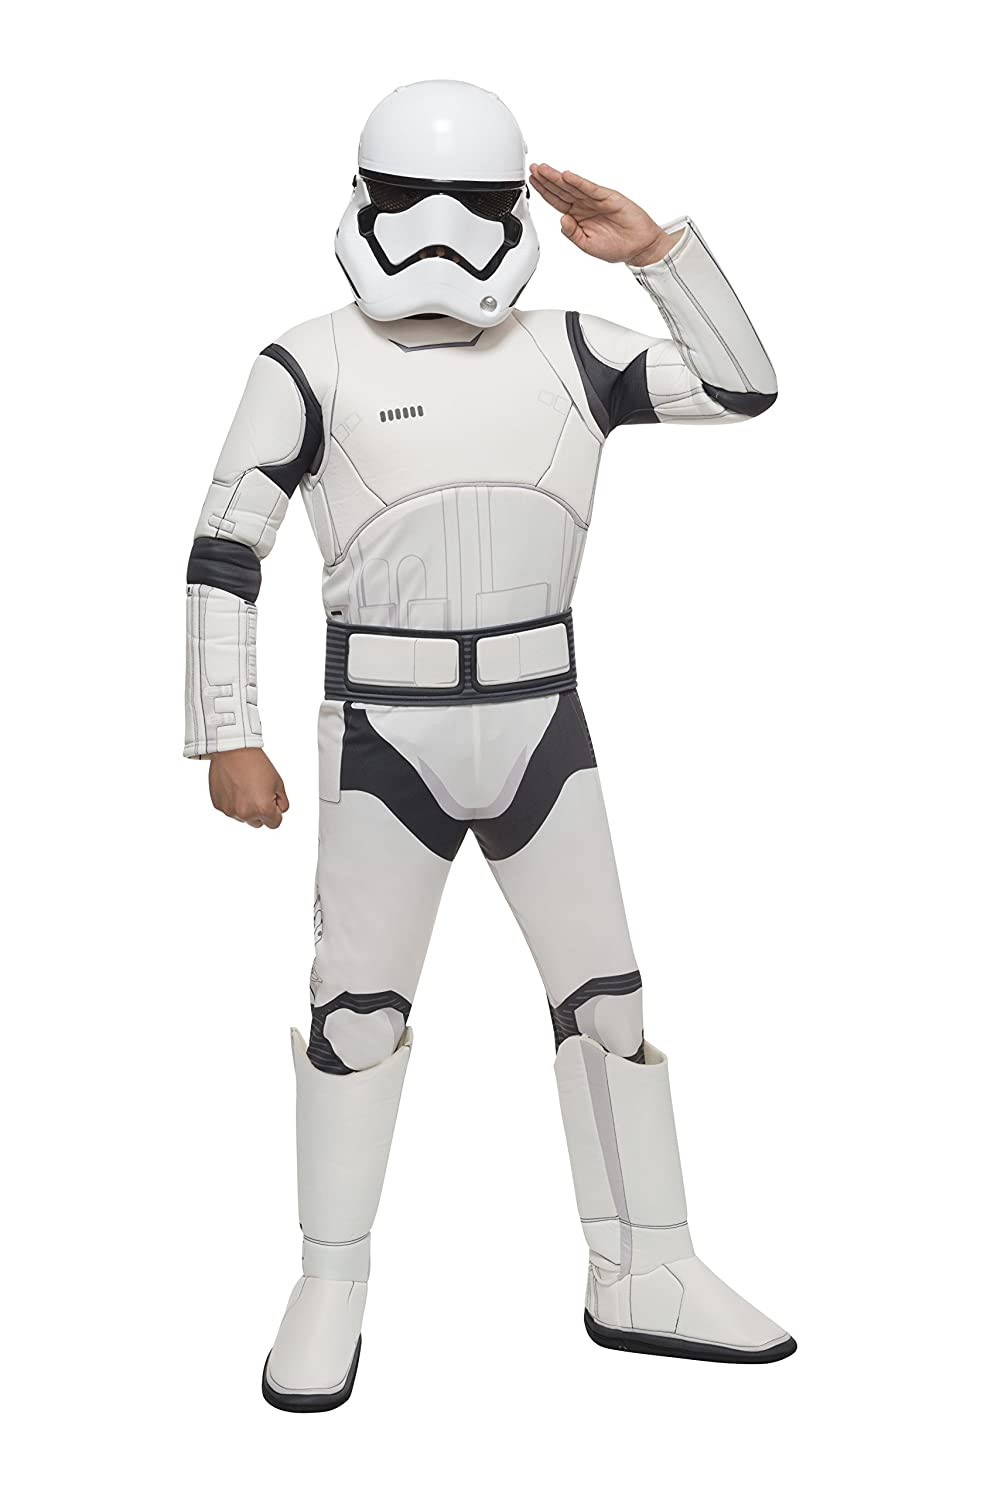 Amazon.com Star Wars VII The Force Awakens Deluxe Childu0027s Stormtrooper Costume and Mask Large Toys u0026 Games  sc 1 st  Amazon.com : stormtrooper costume kids  - Germanpascual.Com